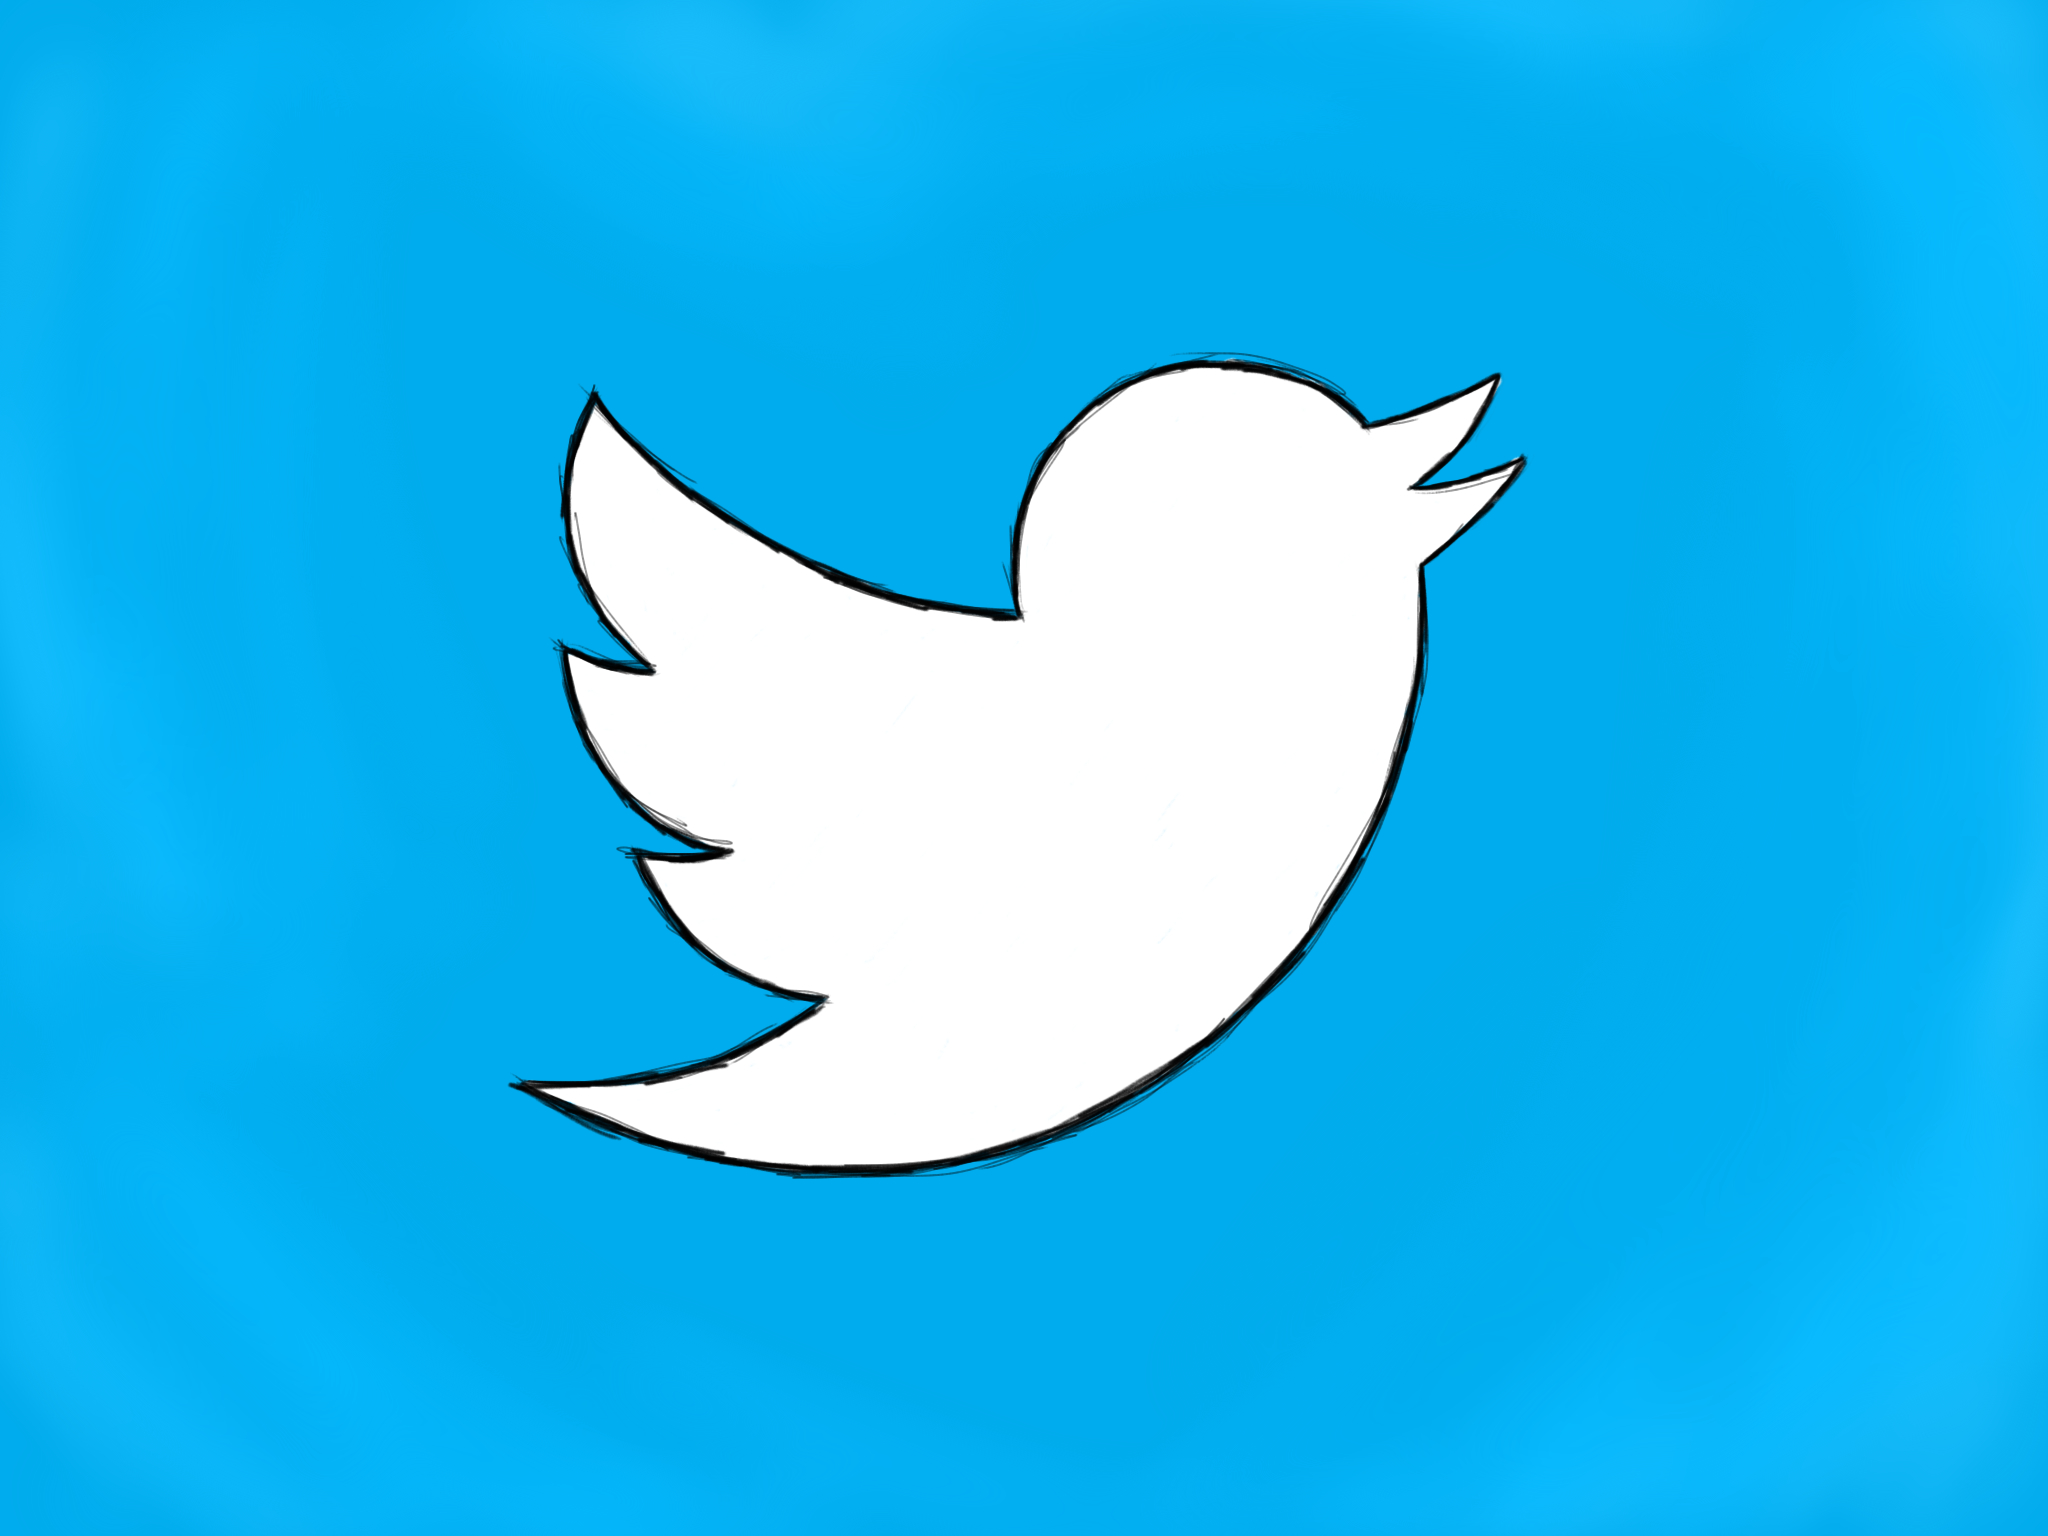 Want to become Twitter verified? Theres an application